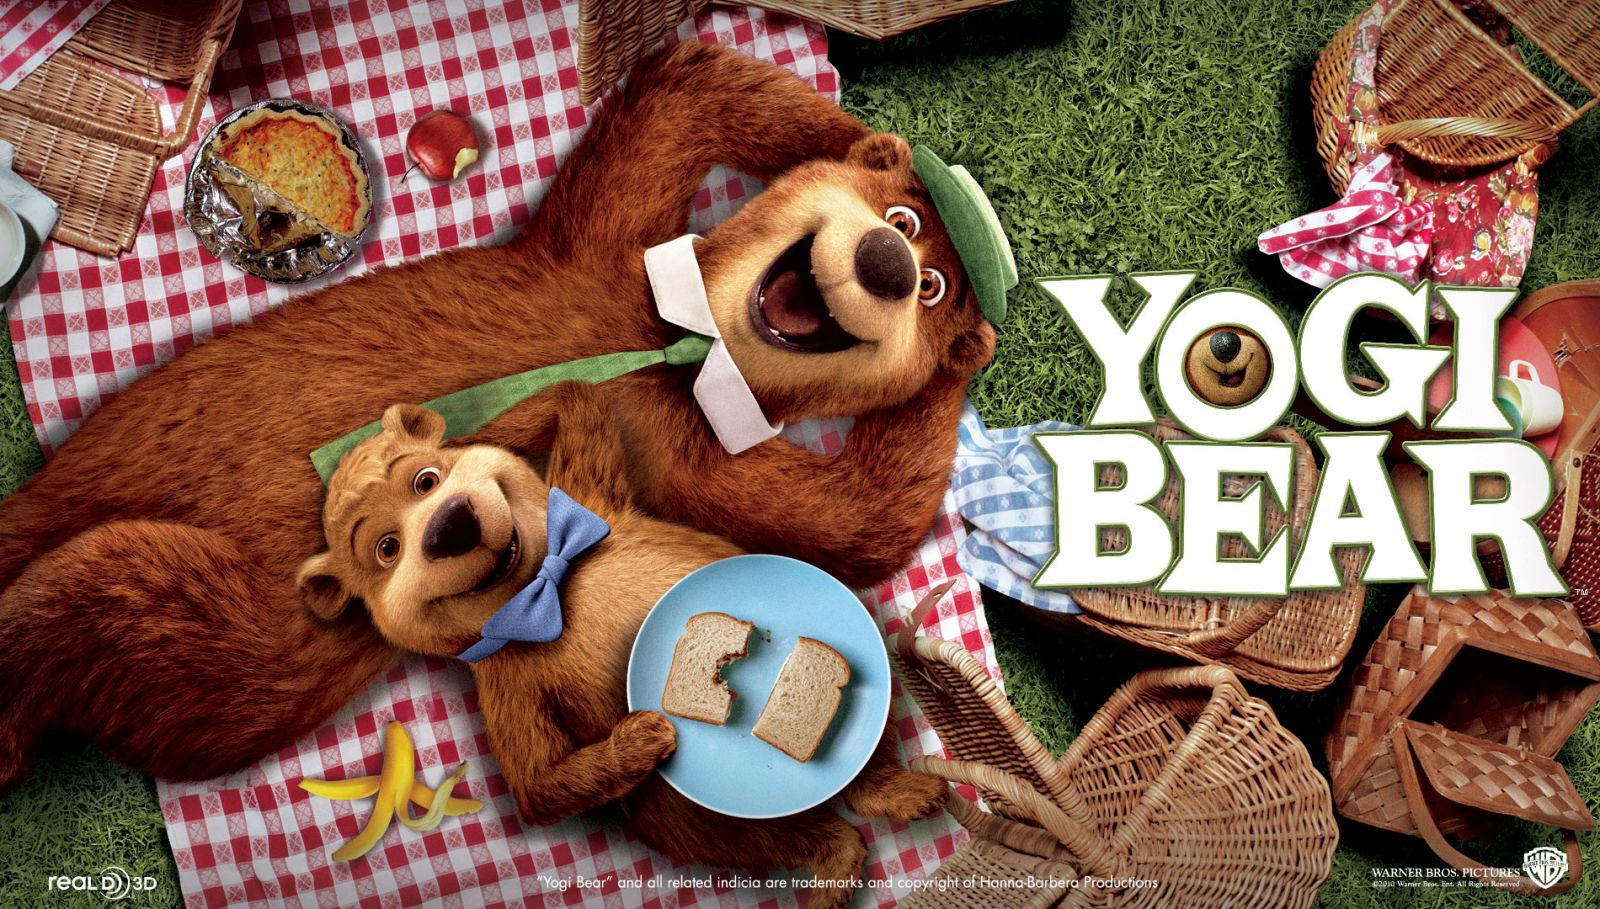 Animation Pictures Wallpapers Yogi Bear Wallpapers